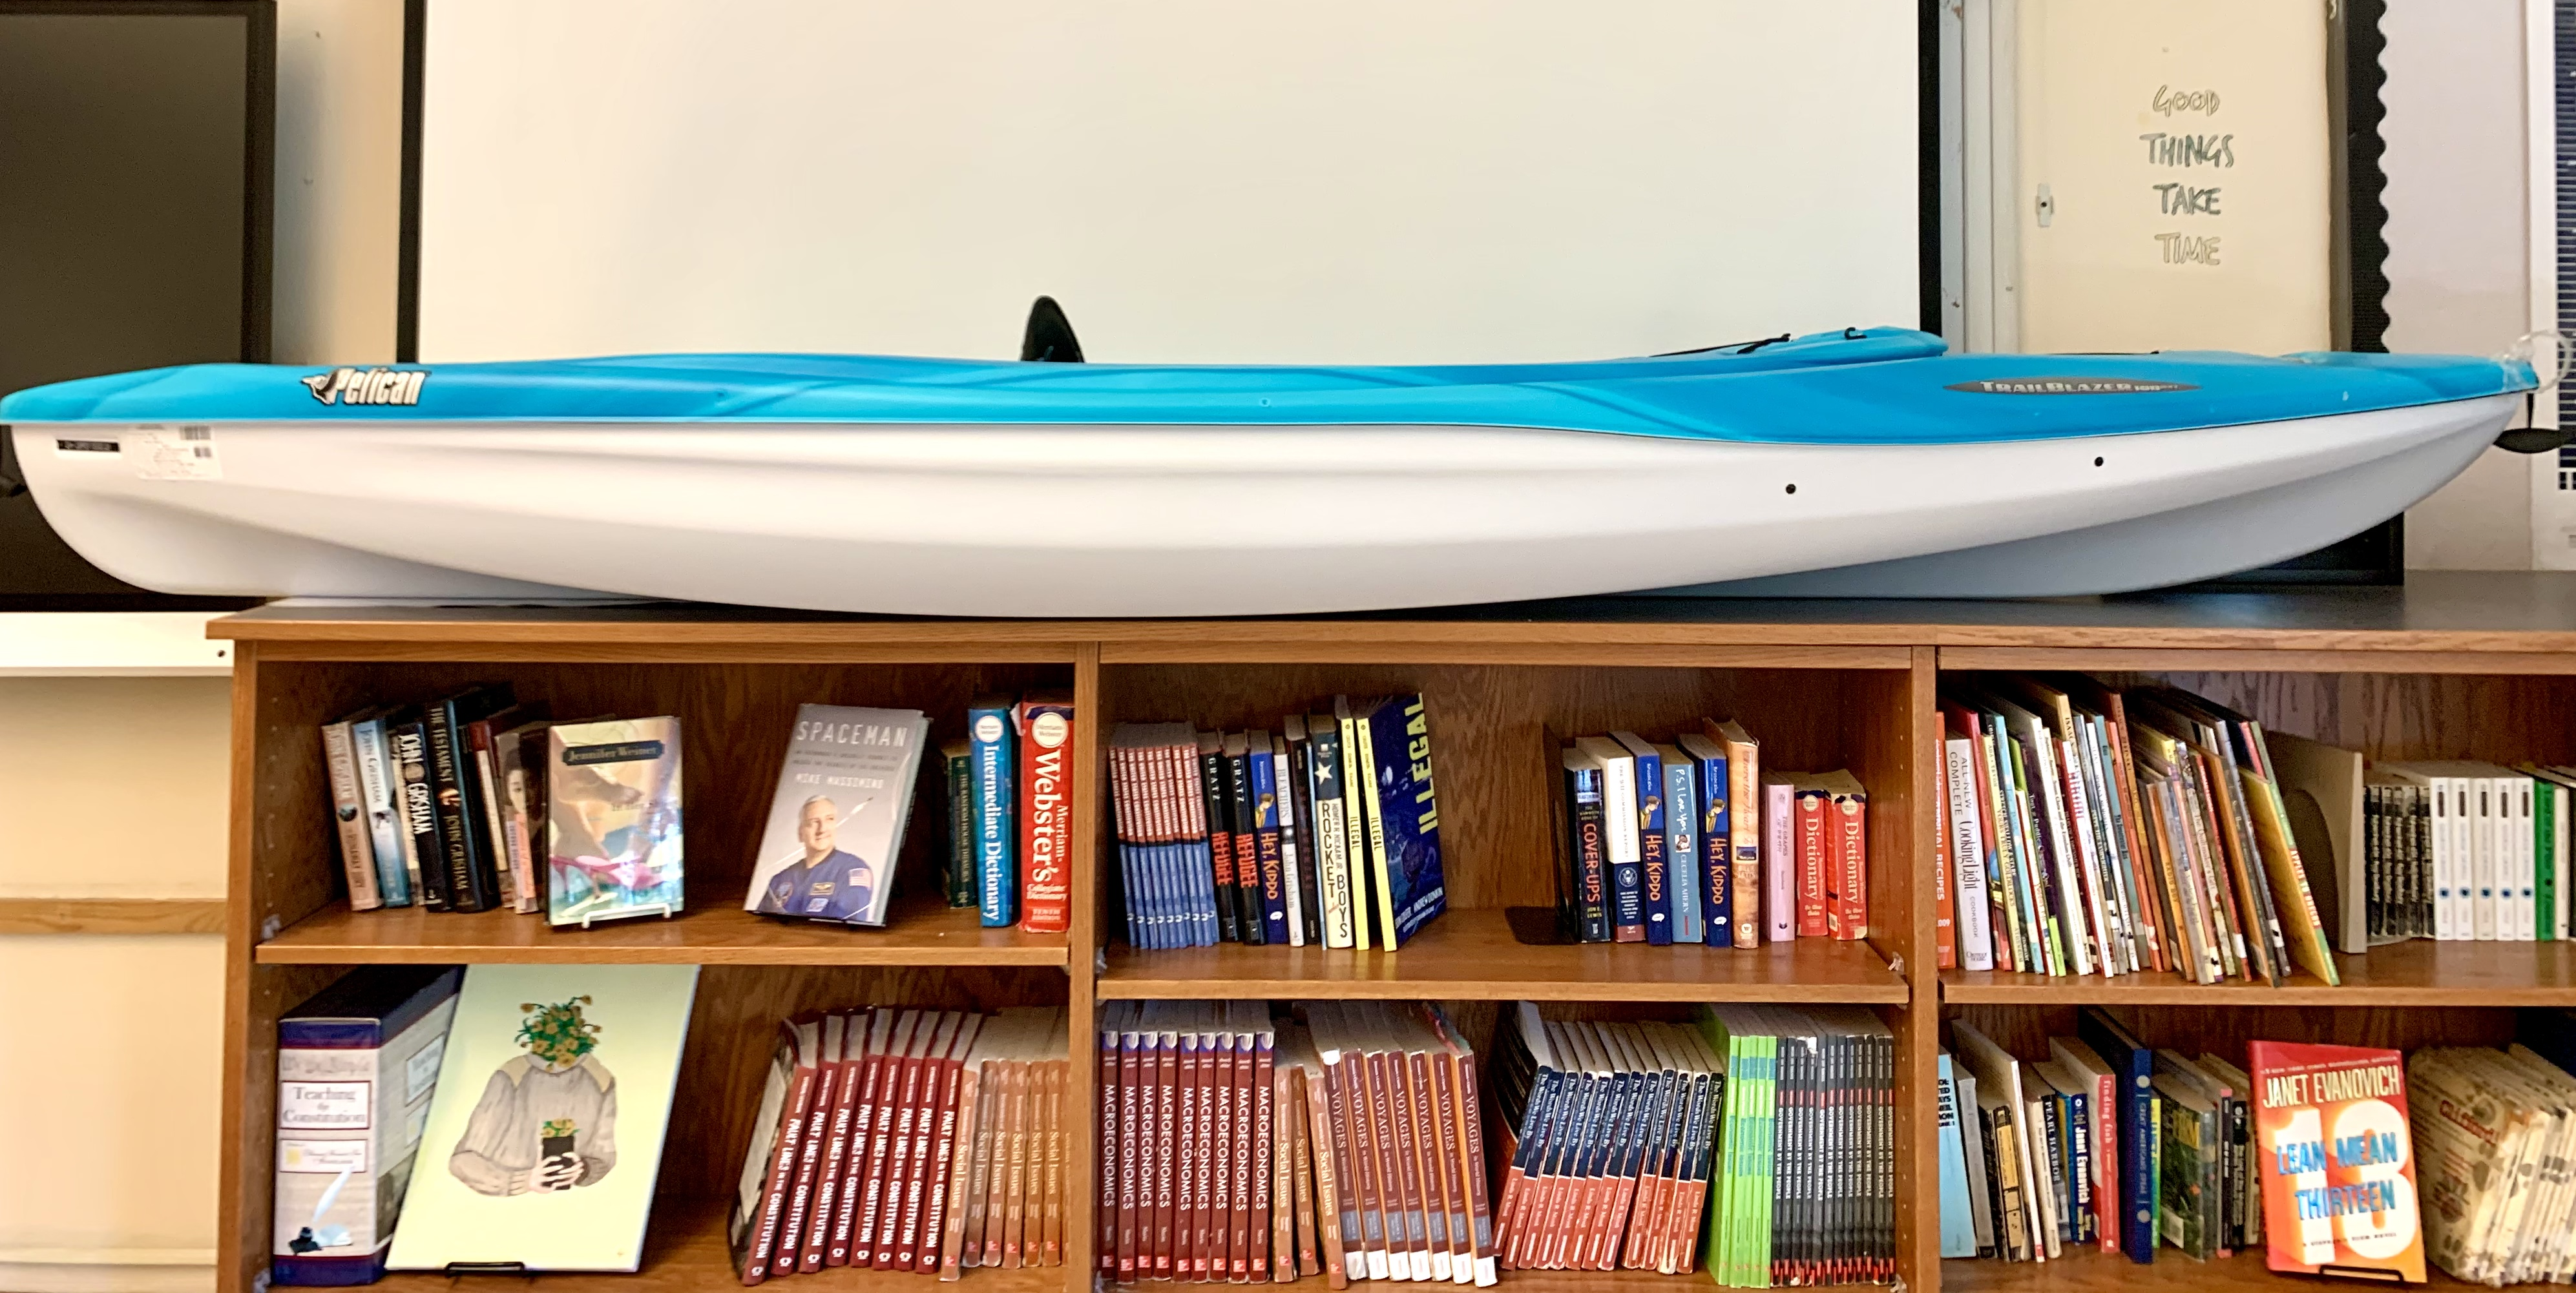 white and blue kayak rests on top of a bookshelf in a high school classroom